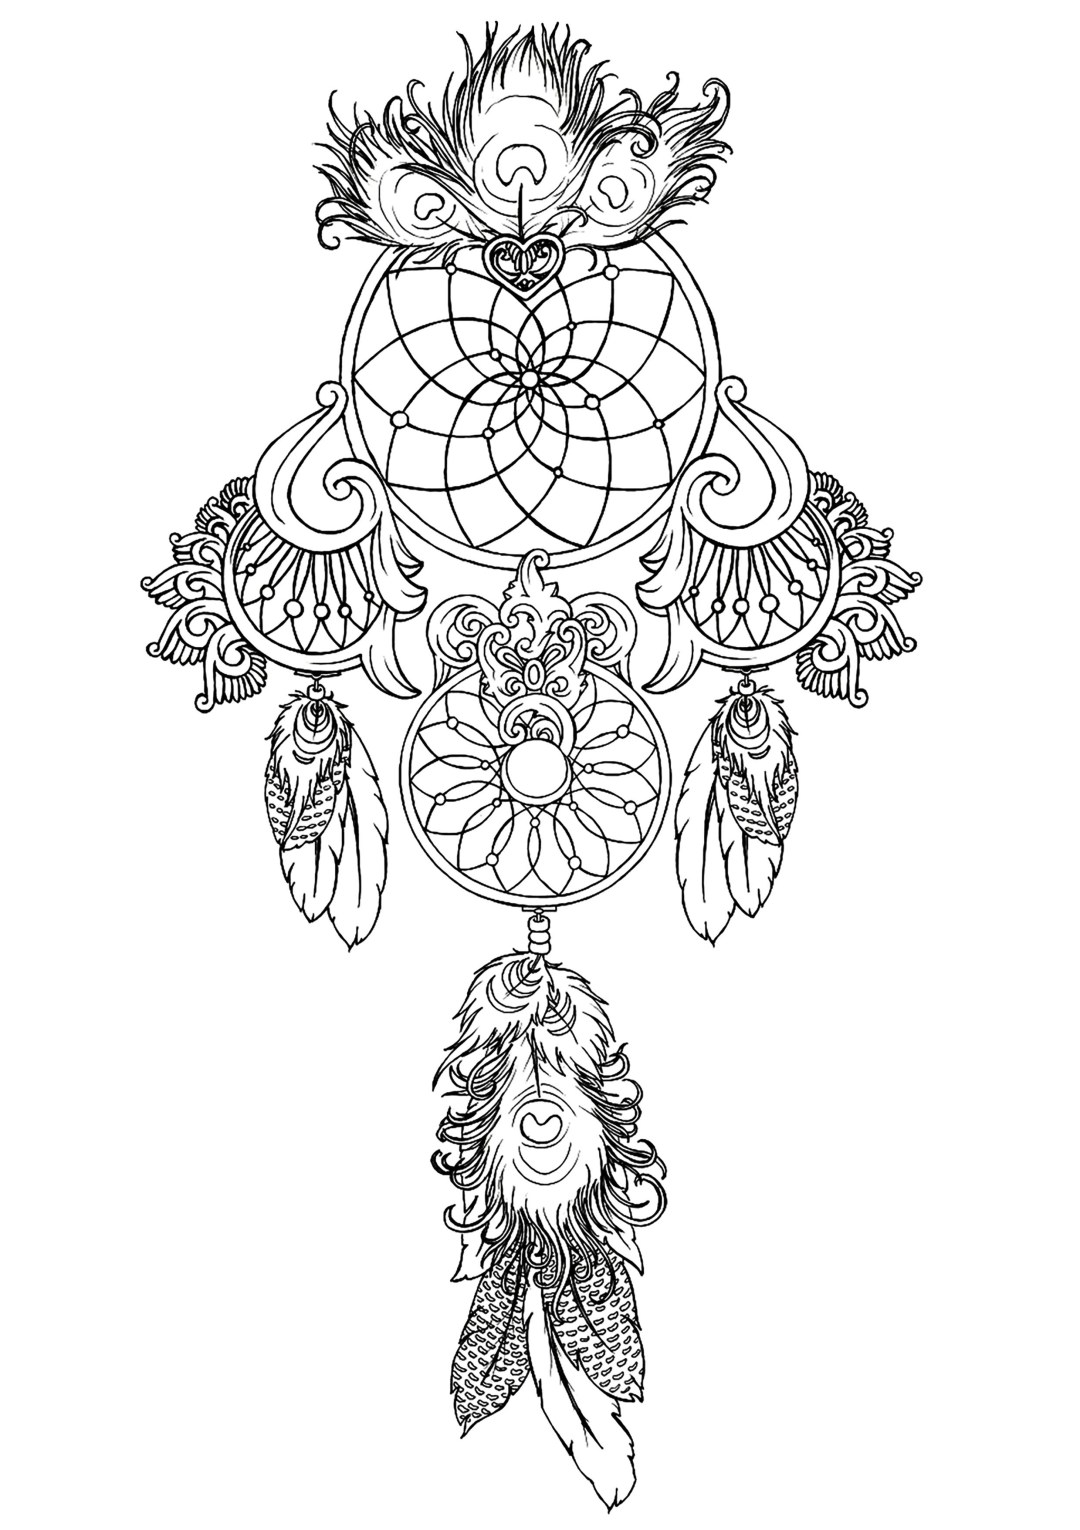 coloring pages online for adults free online coloring pages for adults creatively crafting pages coloring for online adults